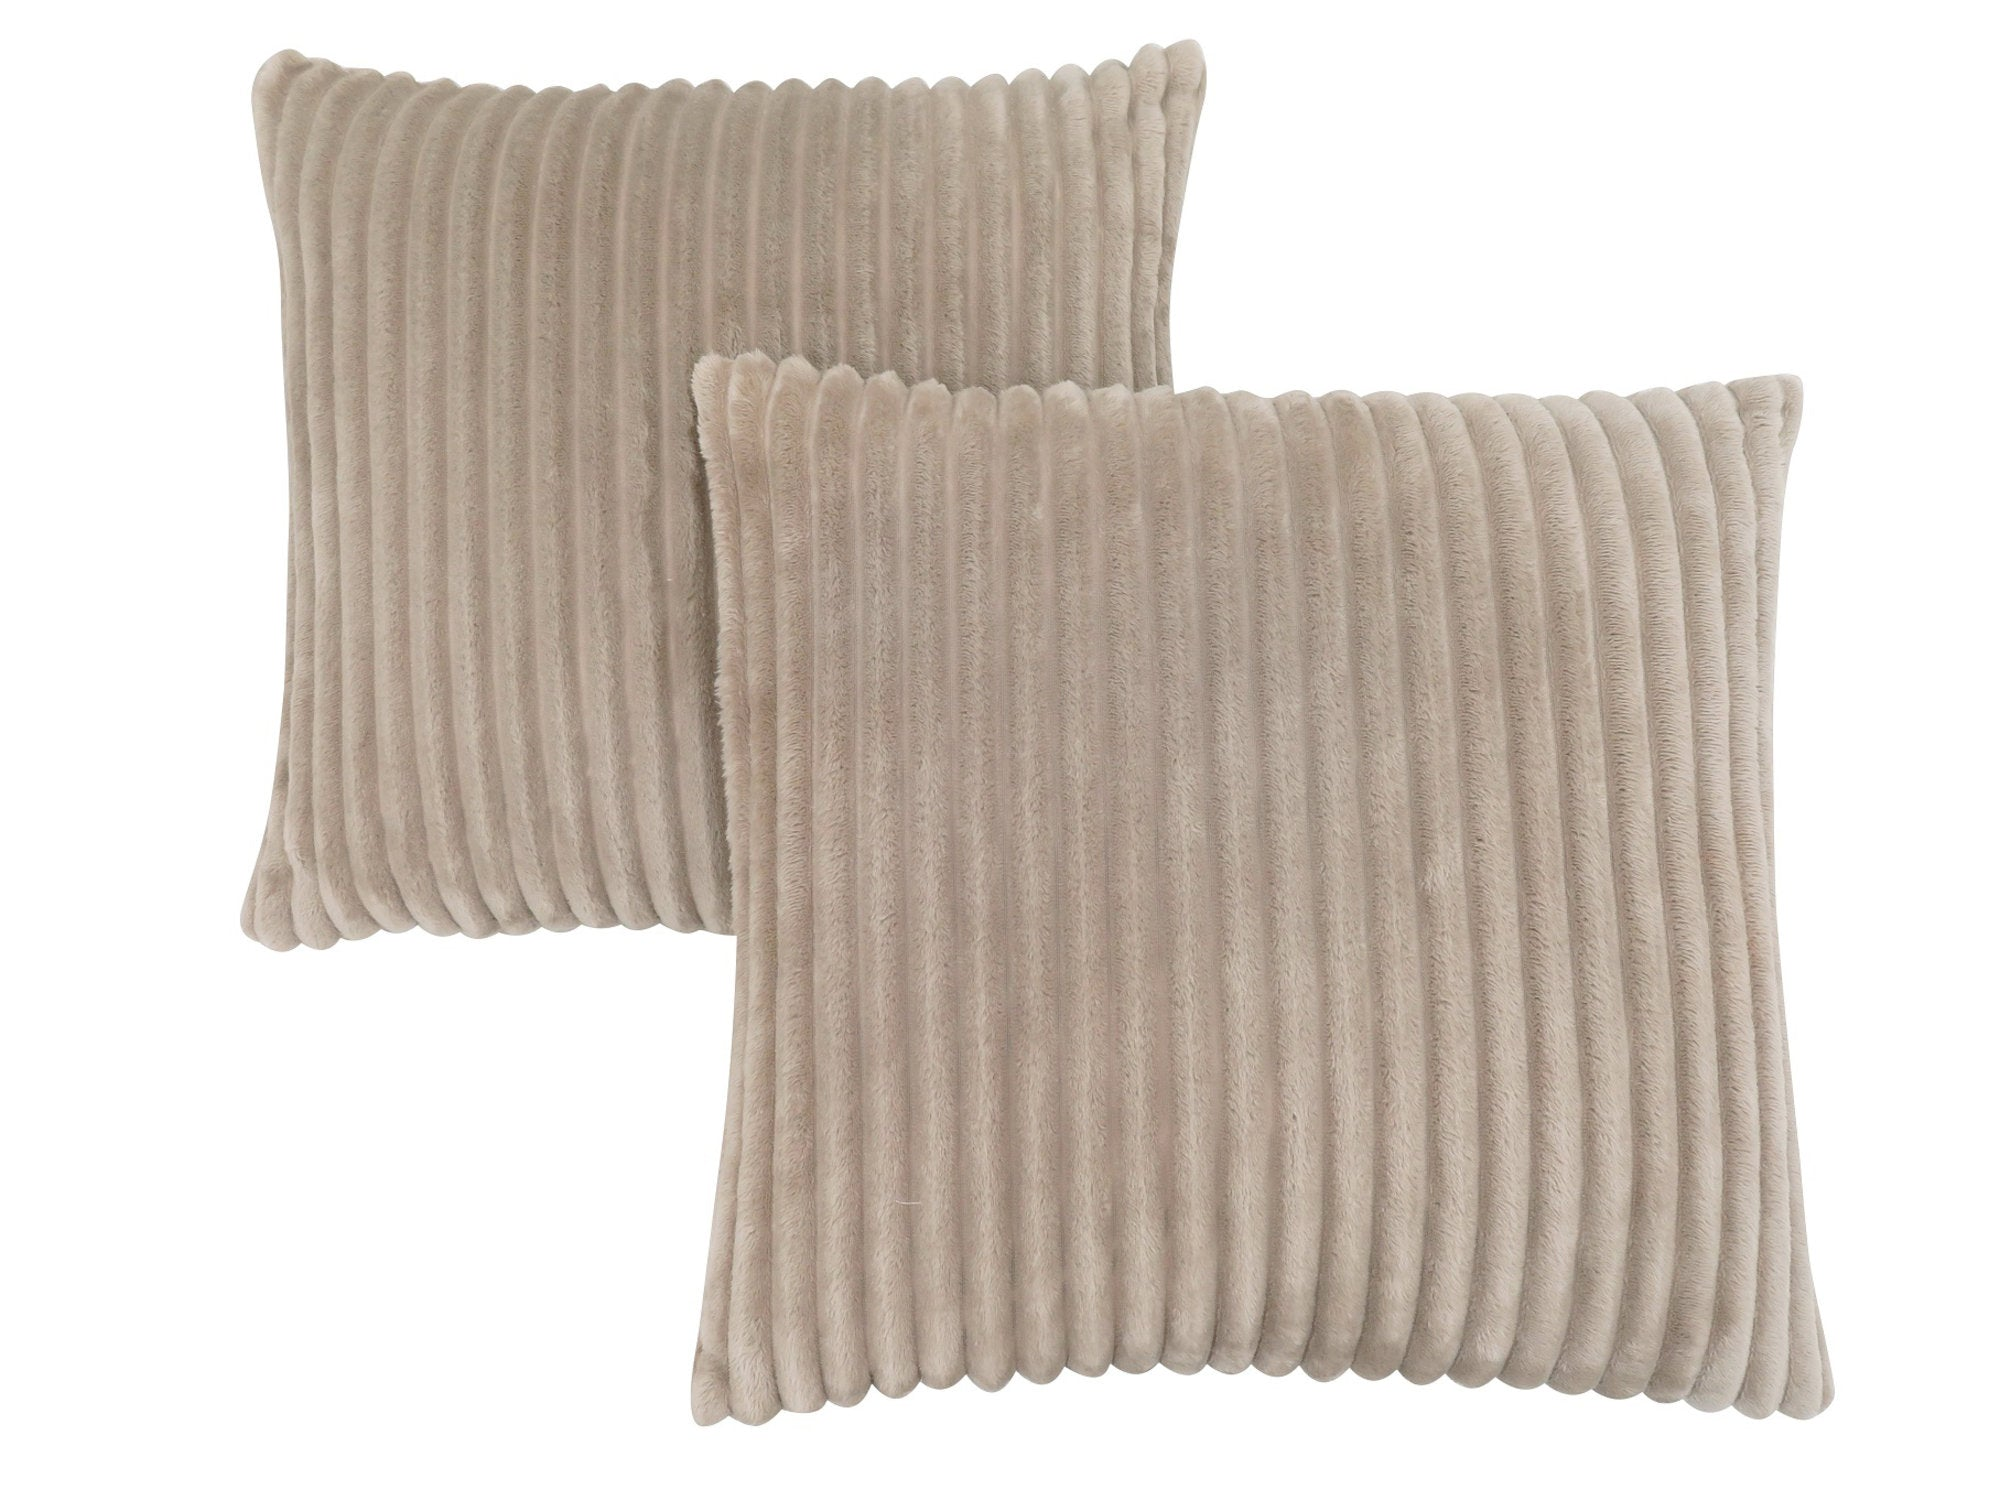 "18"" x 18"" Beige, Ultra Soft Ribbed Style - Pillow 2pcs"